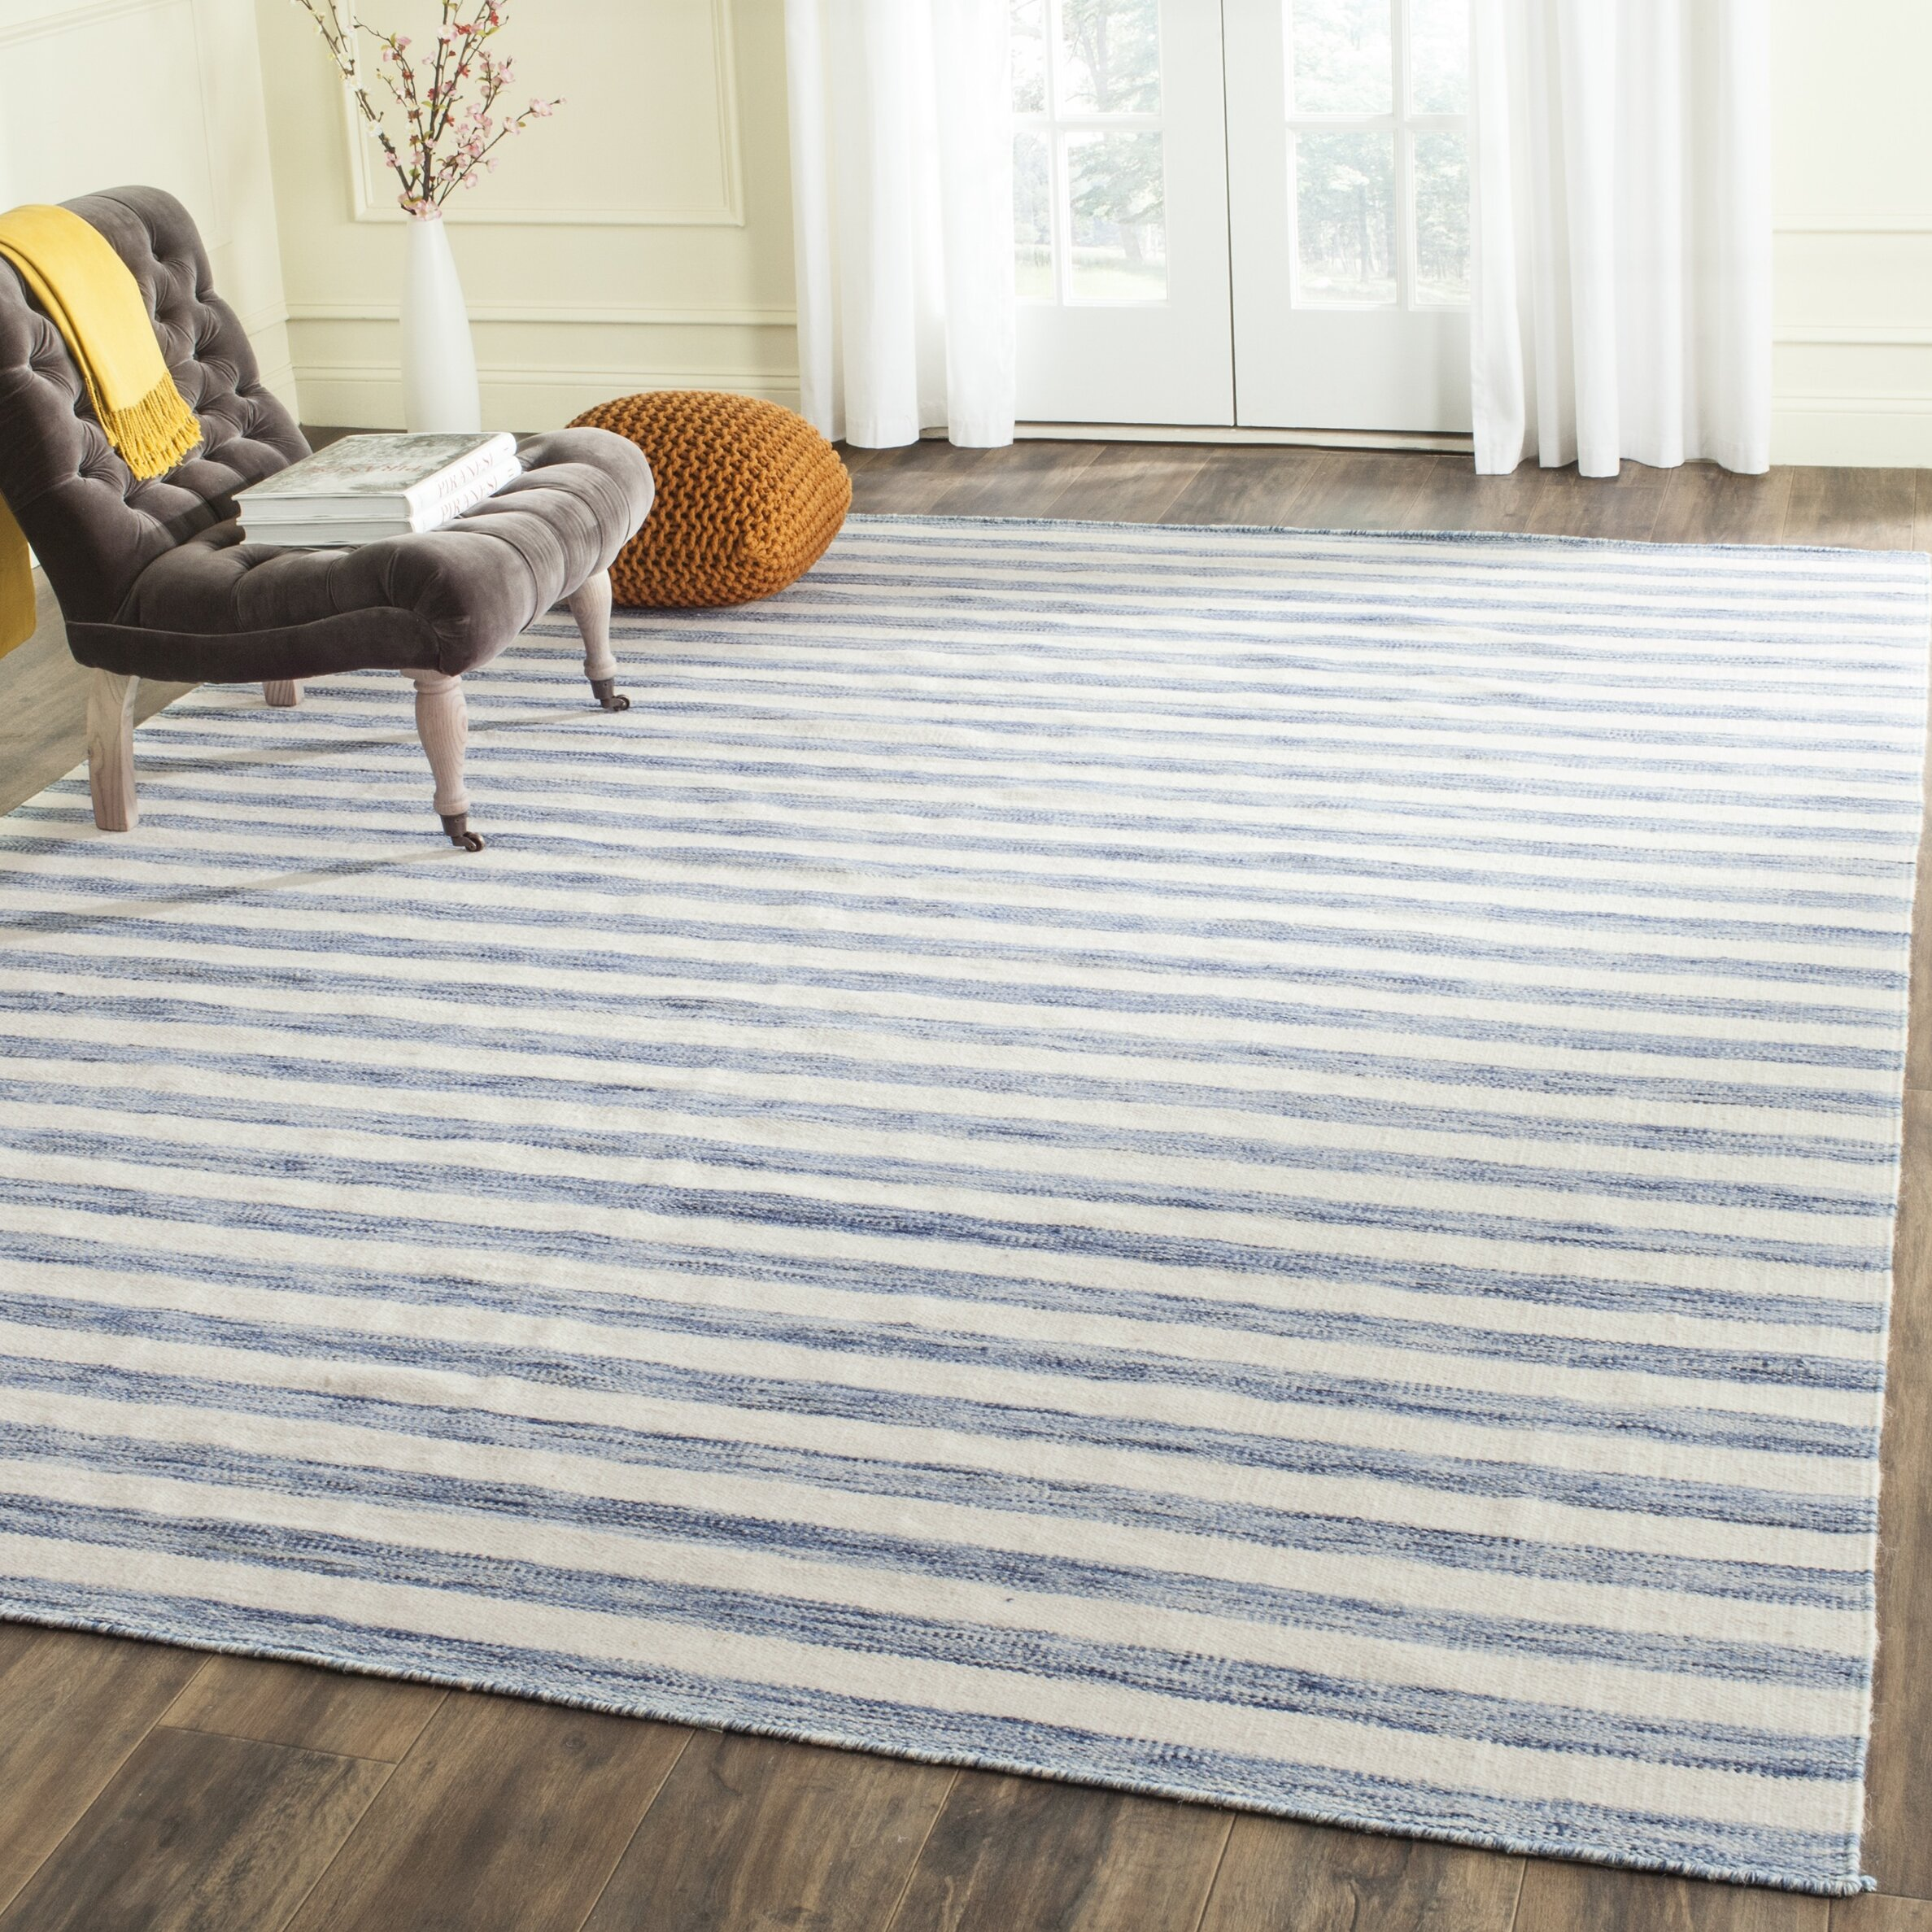 Ebern Designs Rodgers Handwoven Flatweave Cotton Wool Blue Ivory Area Rug Reviews Wayfair